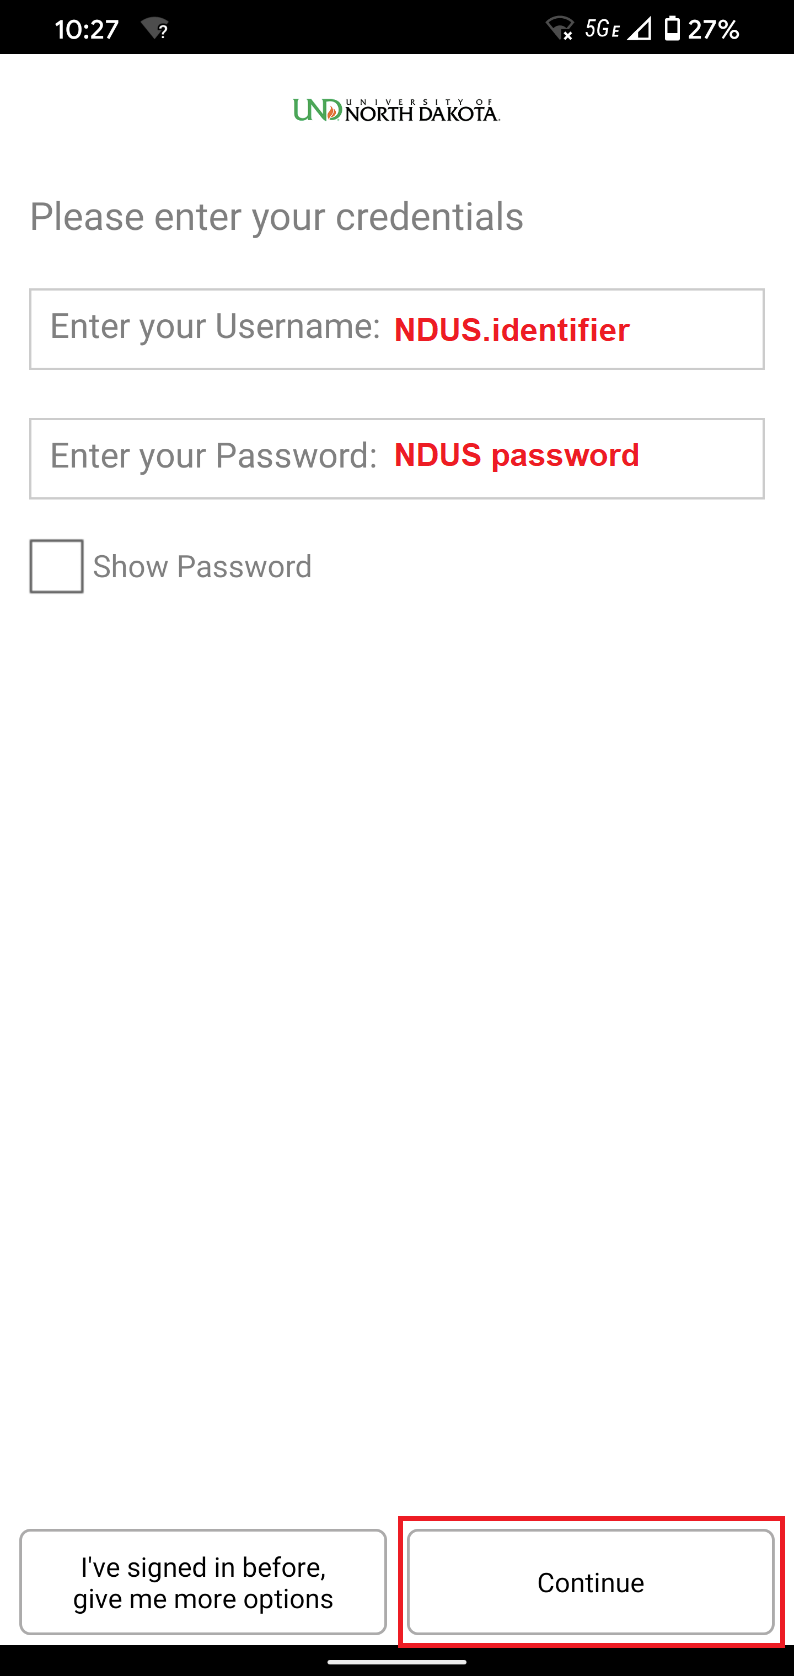 Open the JoinNowapp and enter your NDUScredentials and clickContinue.